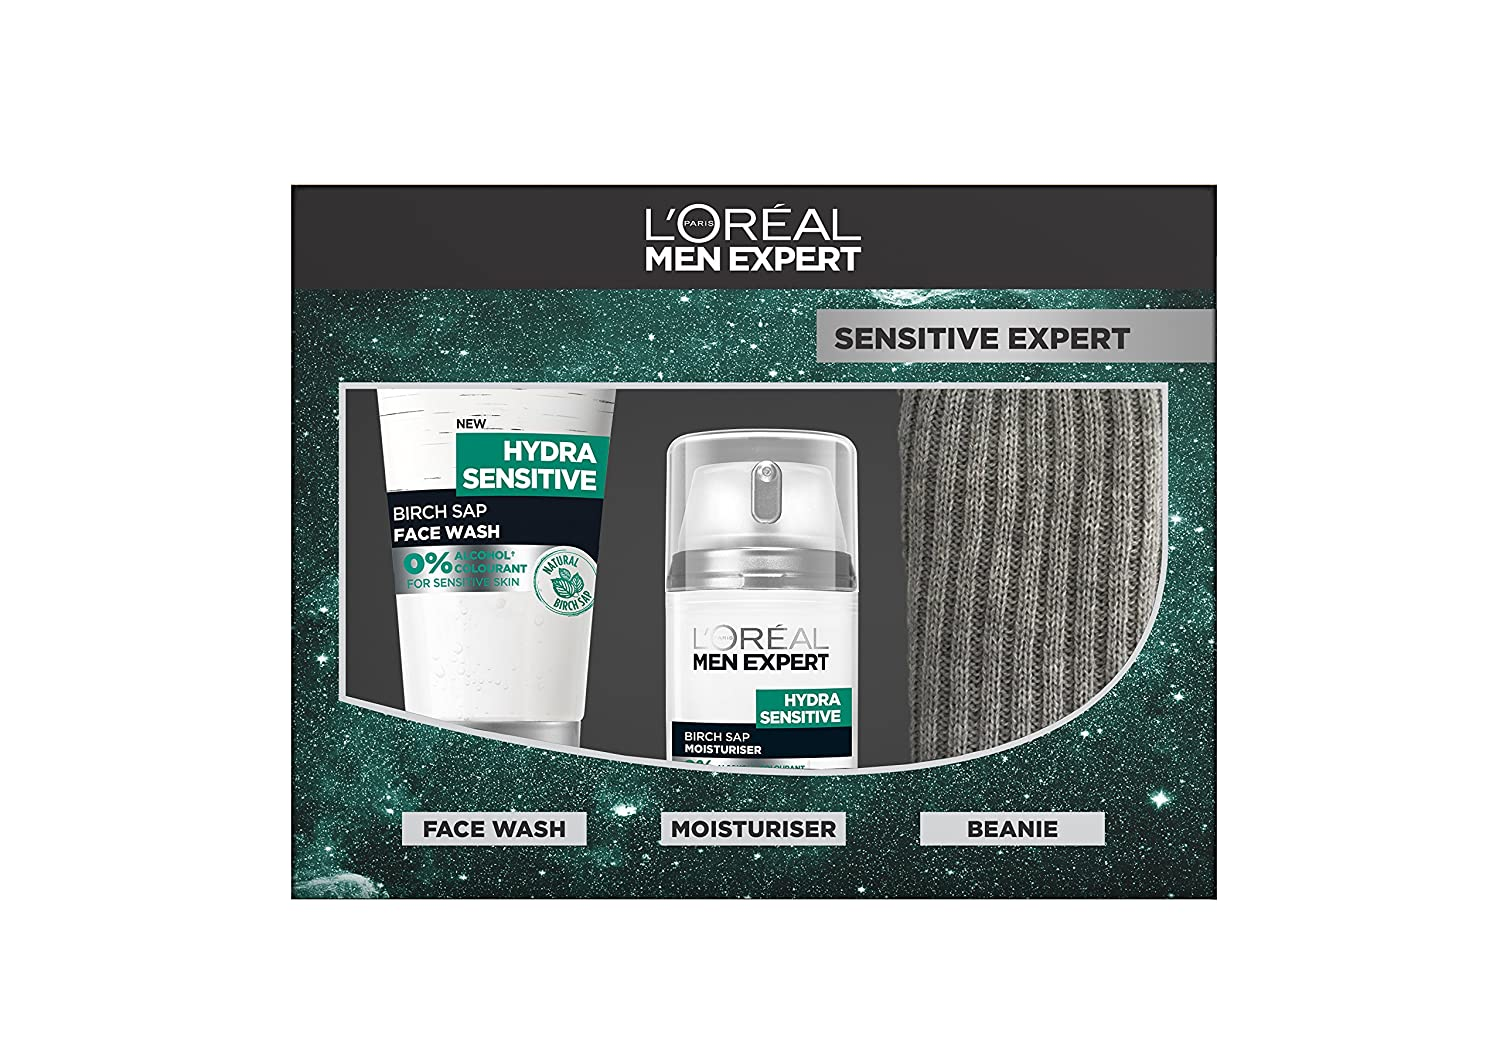 L'Oreal Men Expert Hydra Sensitive Shower Gel 300ml Pack of 6 L' Oreal 3600523435210